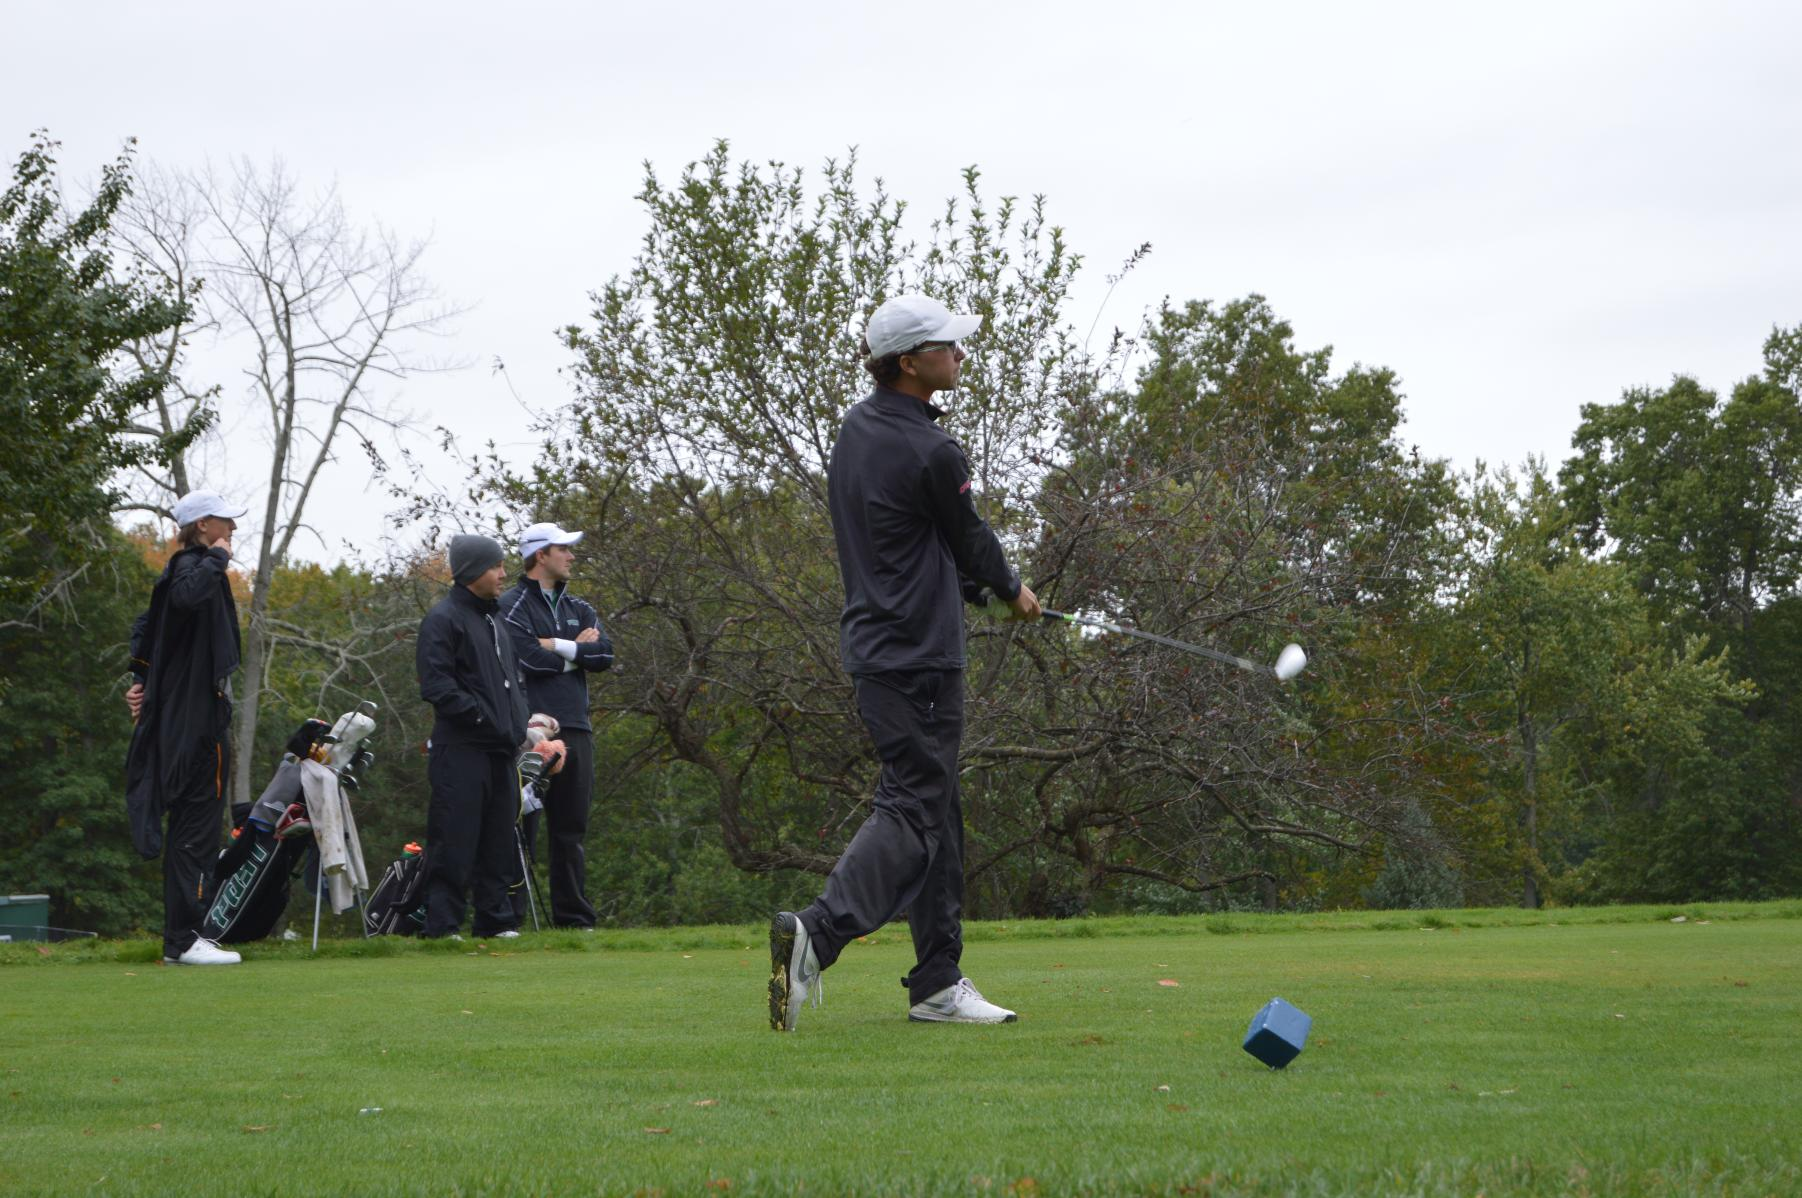 MEN'S GOLF IN SEVENTH PLACE AFTER ROUND ONE OF PENMEN FALL INVITATIONAL